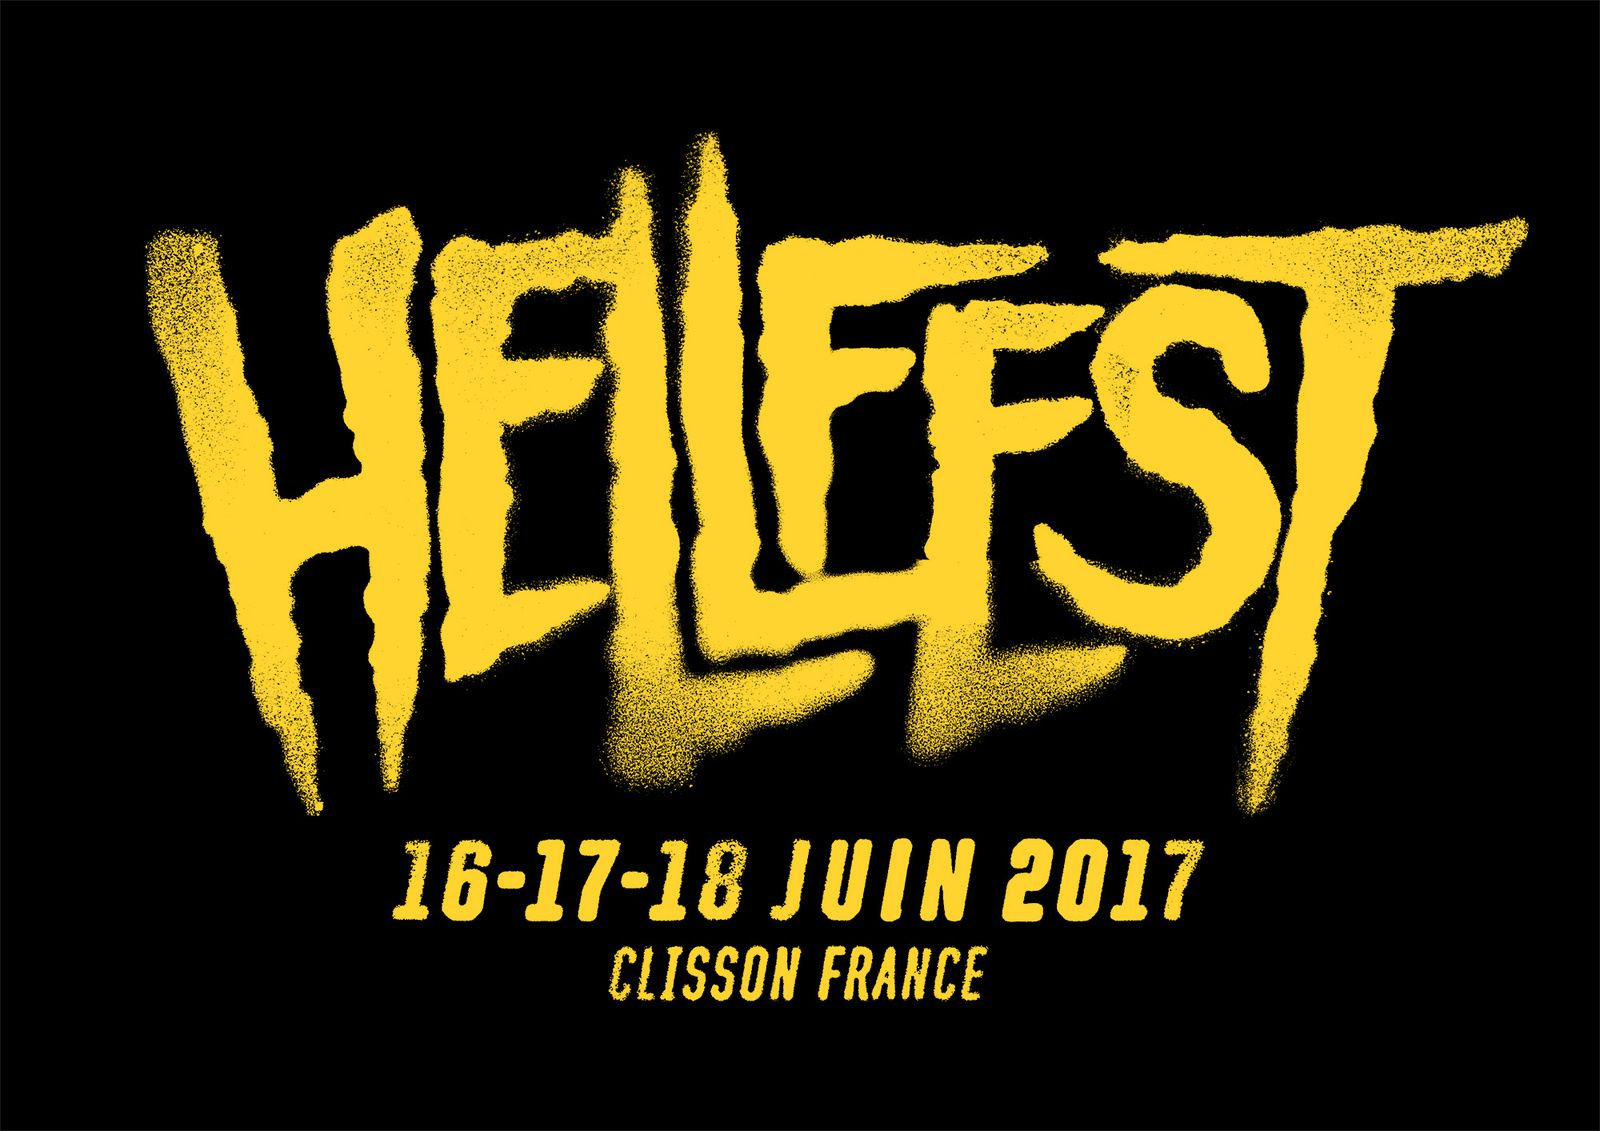 Arte Tv Hellfest 2017 Video Exclusive Loud Tv Nostromo Avant De Monter Sur Scene Au